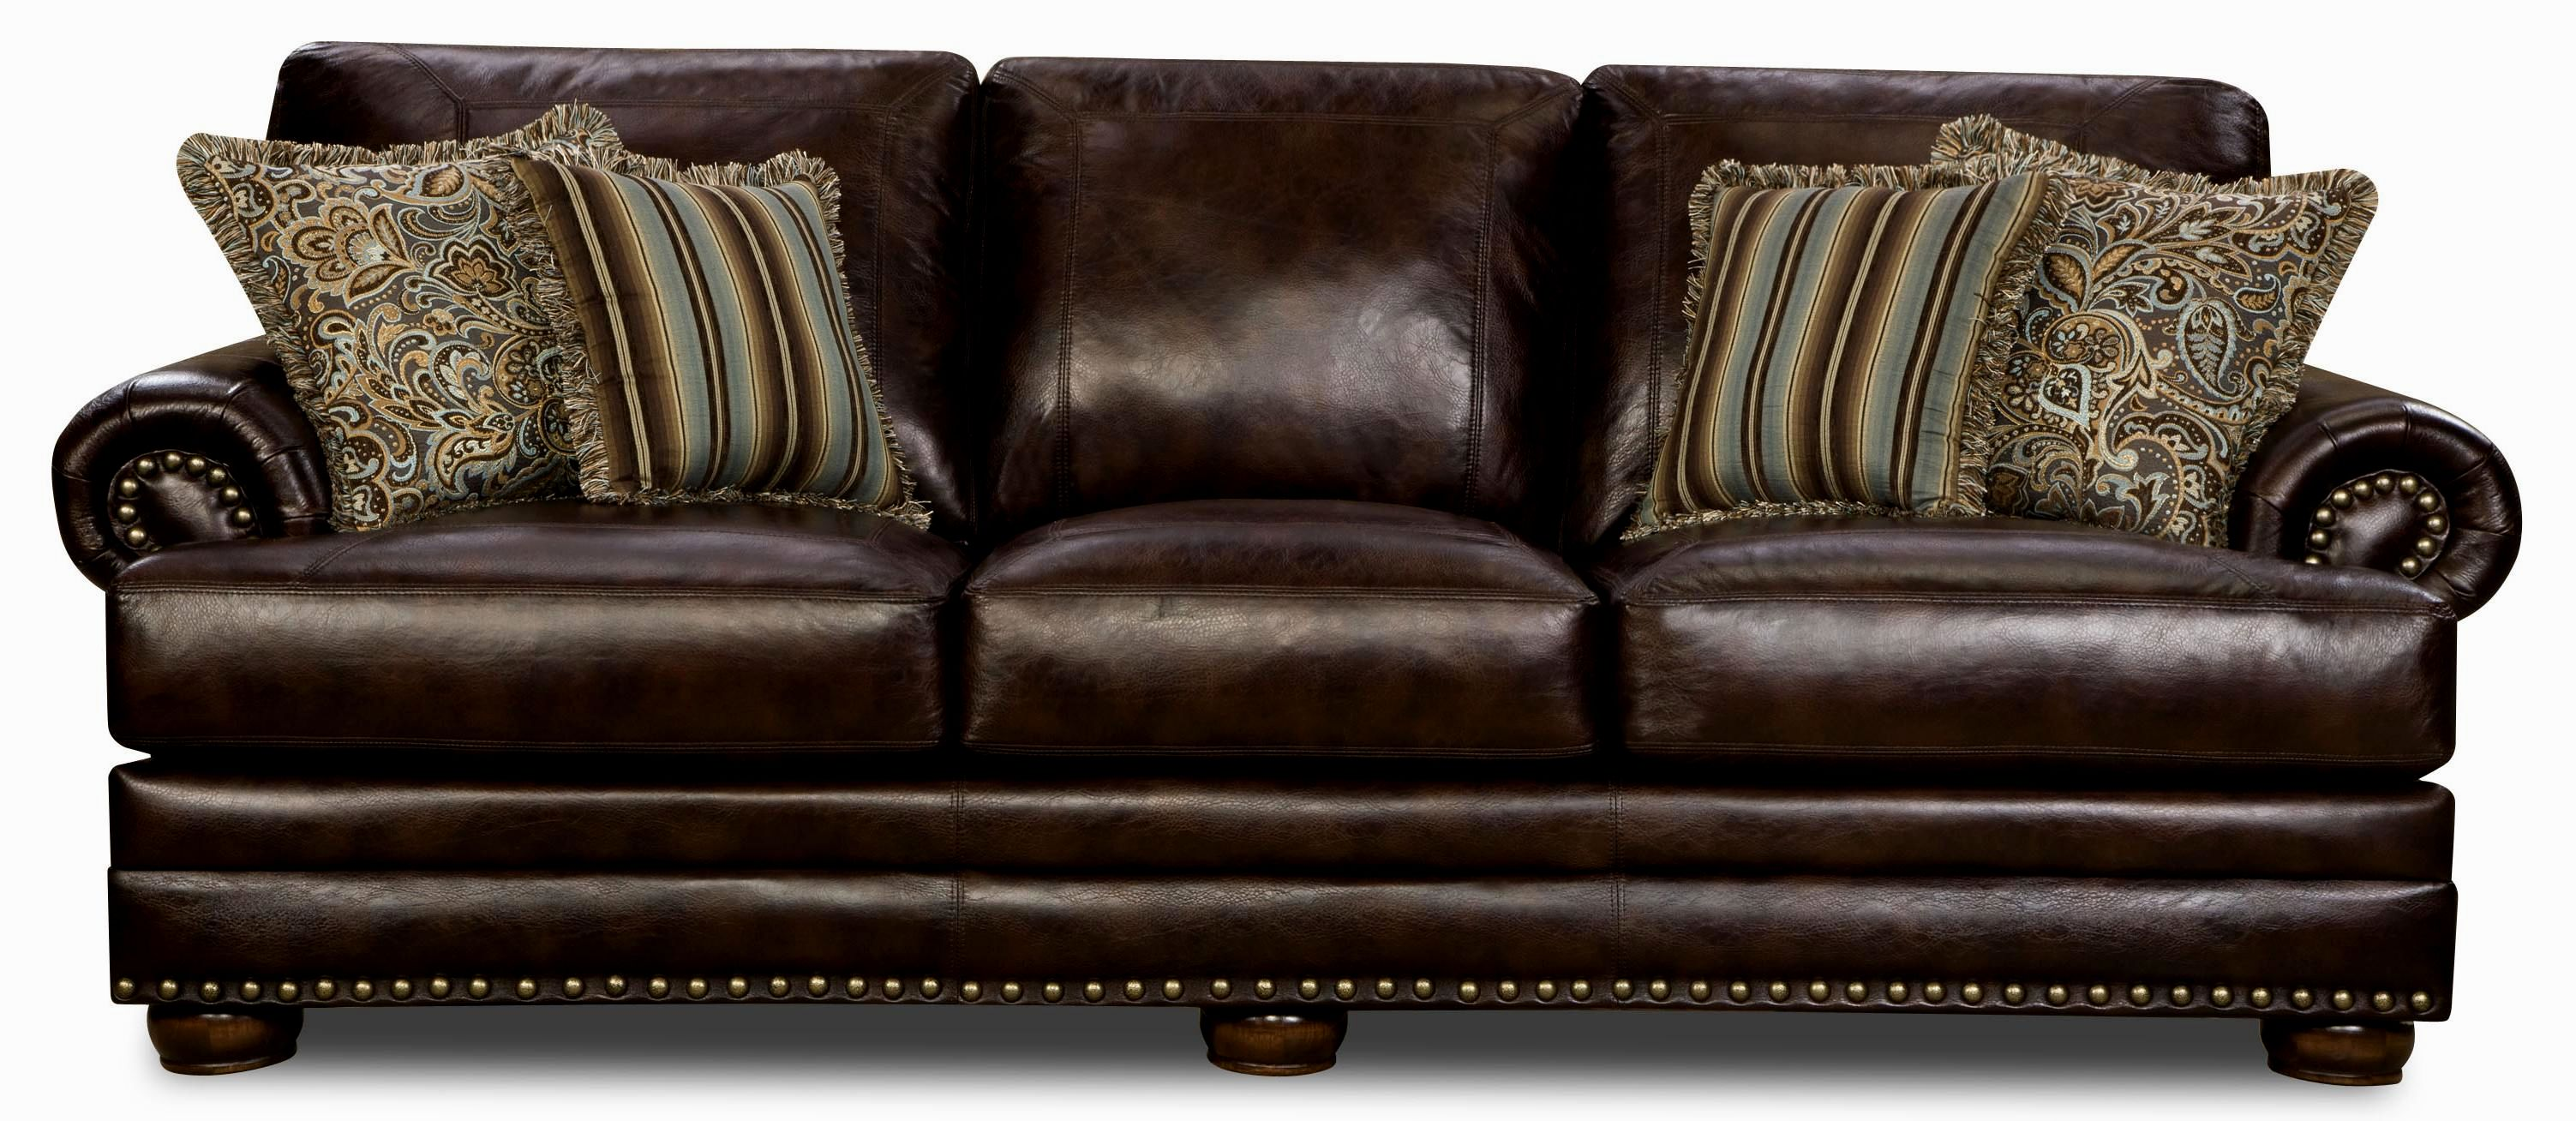 Sensational American Leather Sleeper Sofa Reviews Layout